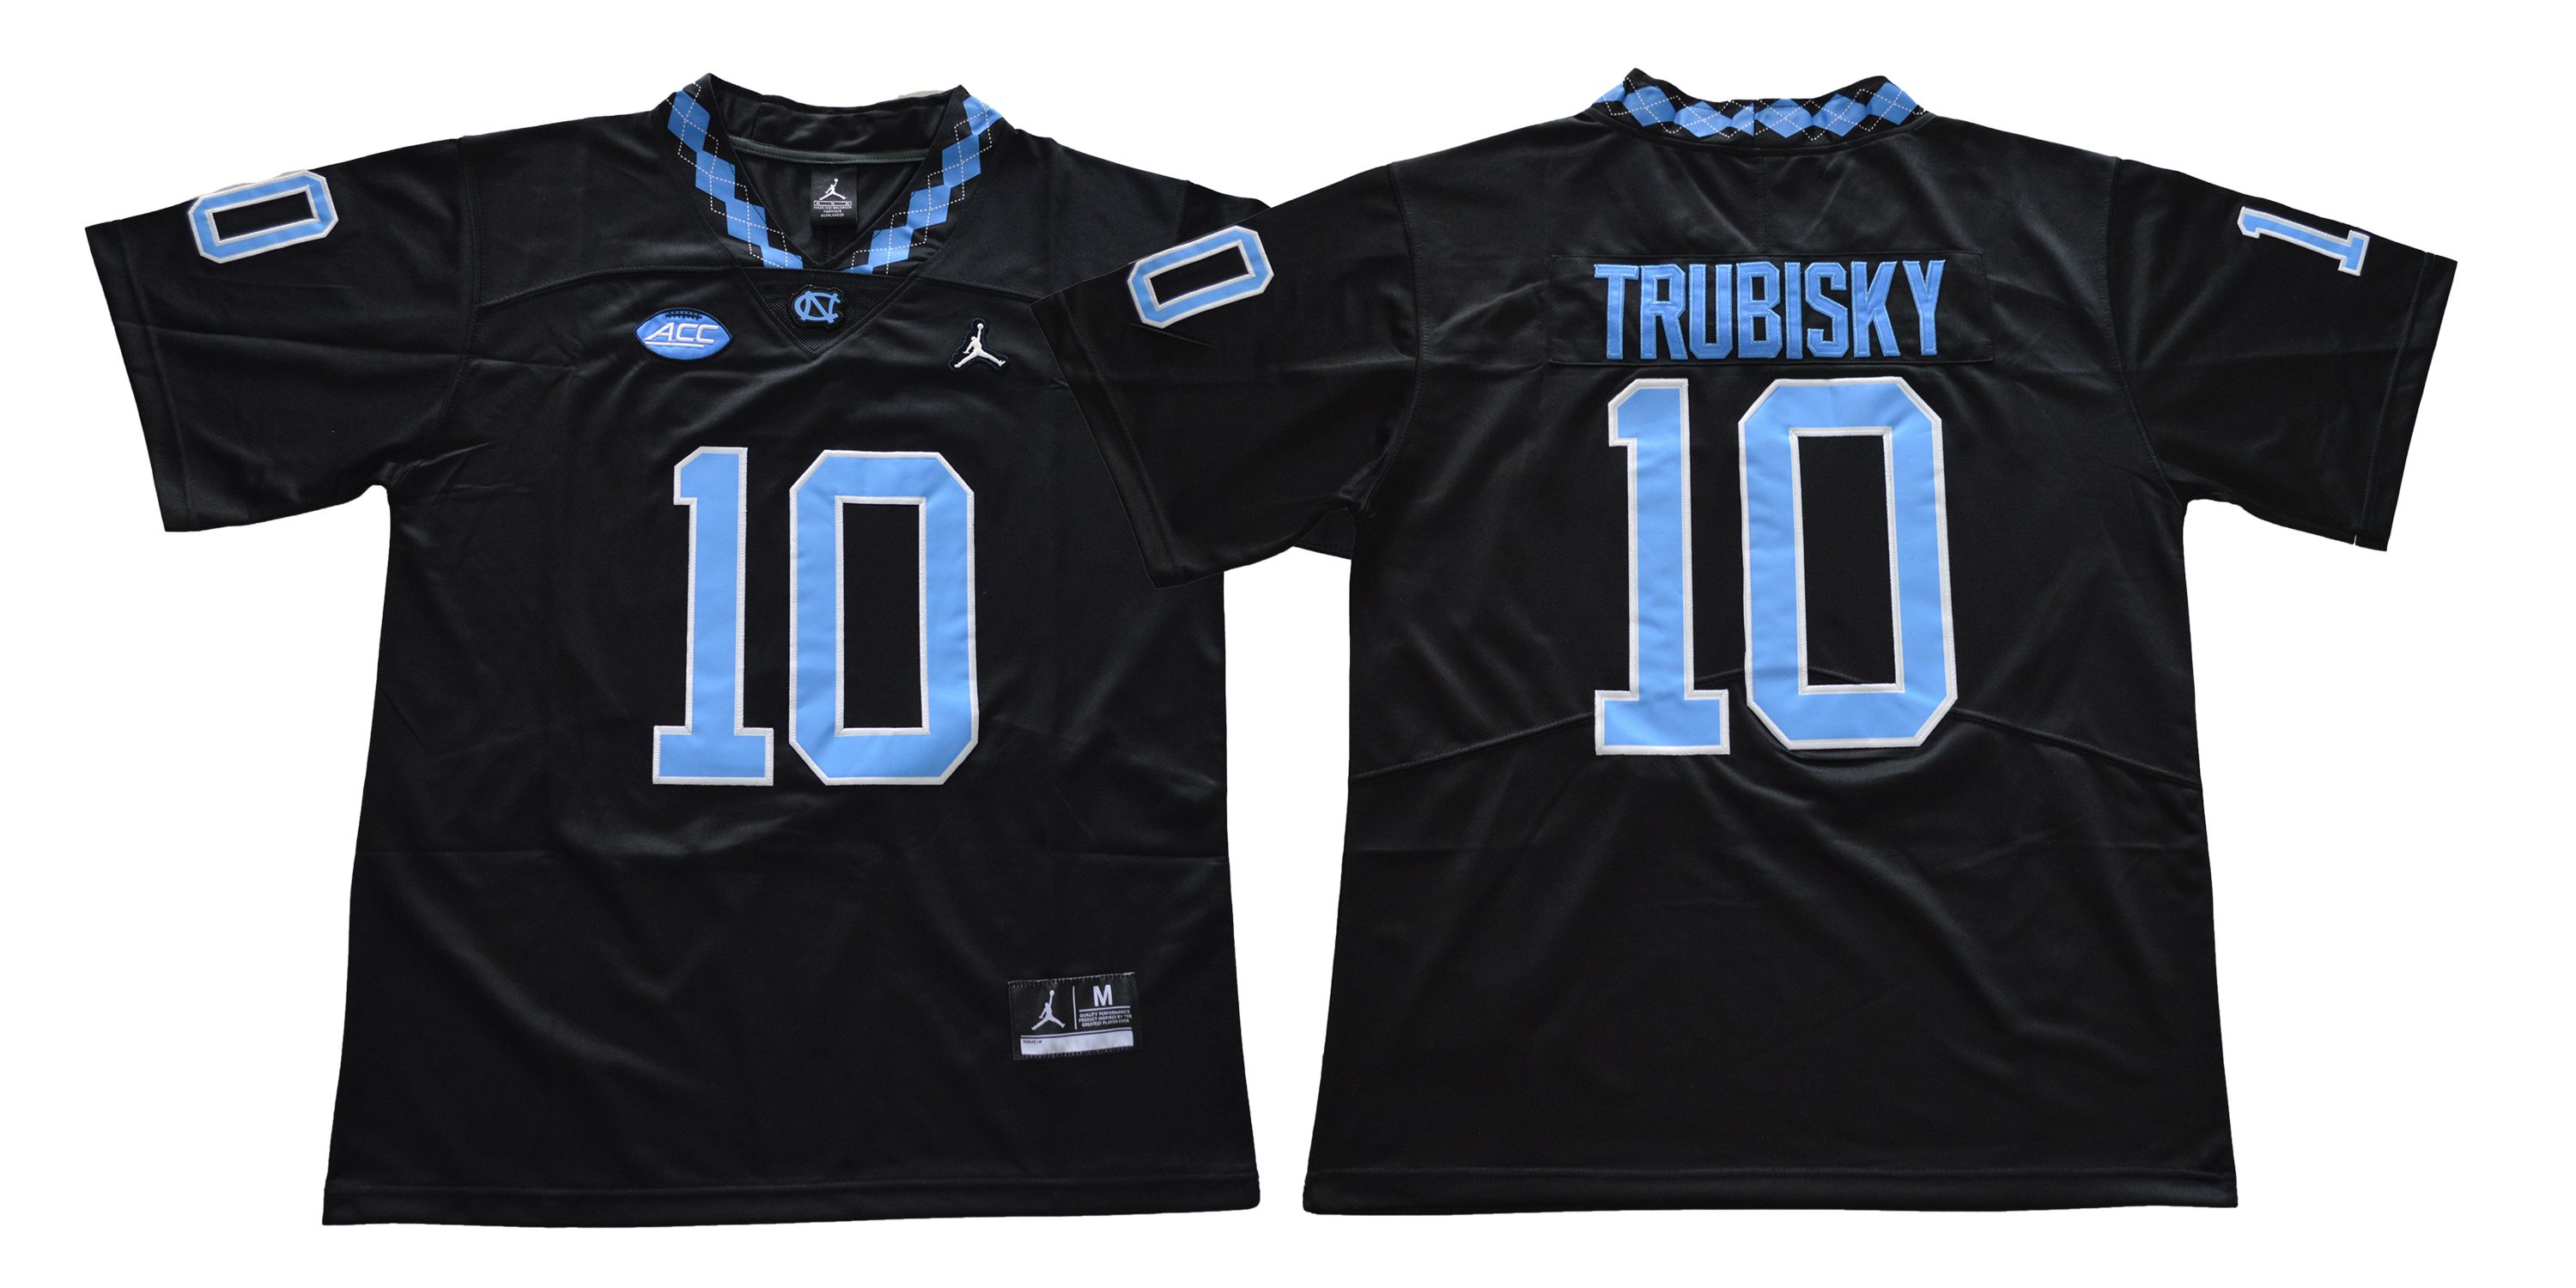 Men North Carolina Tar Heels 10 Trubisky Black NCAA Jerseys